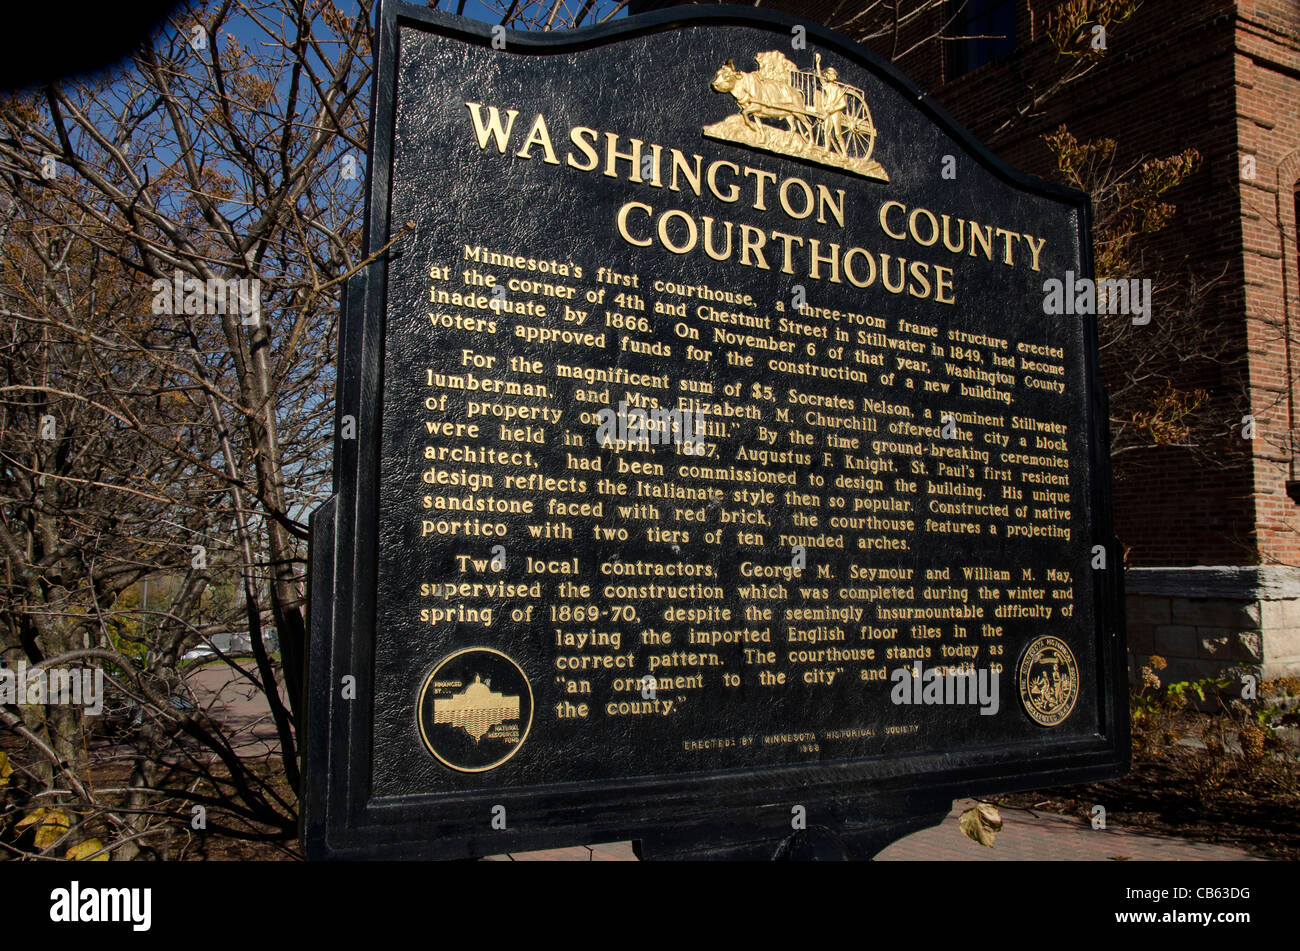 Sign for the Washington County Courthouse in Stillwater, Minnesota - Stock Image